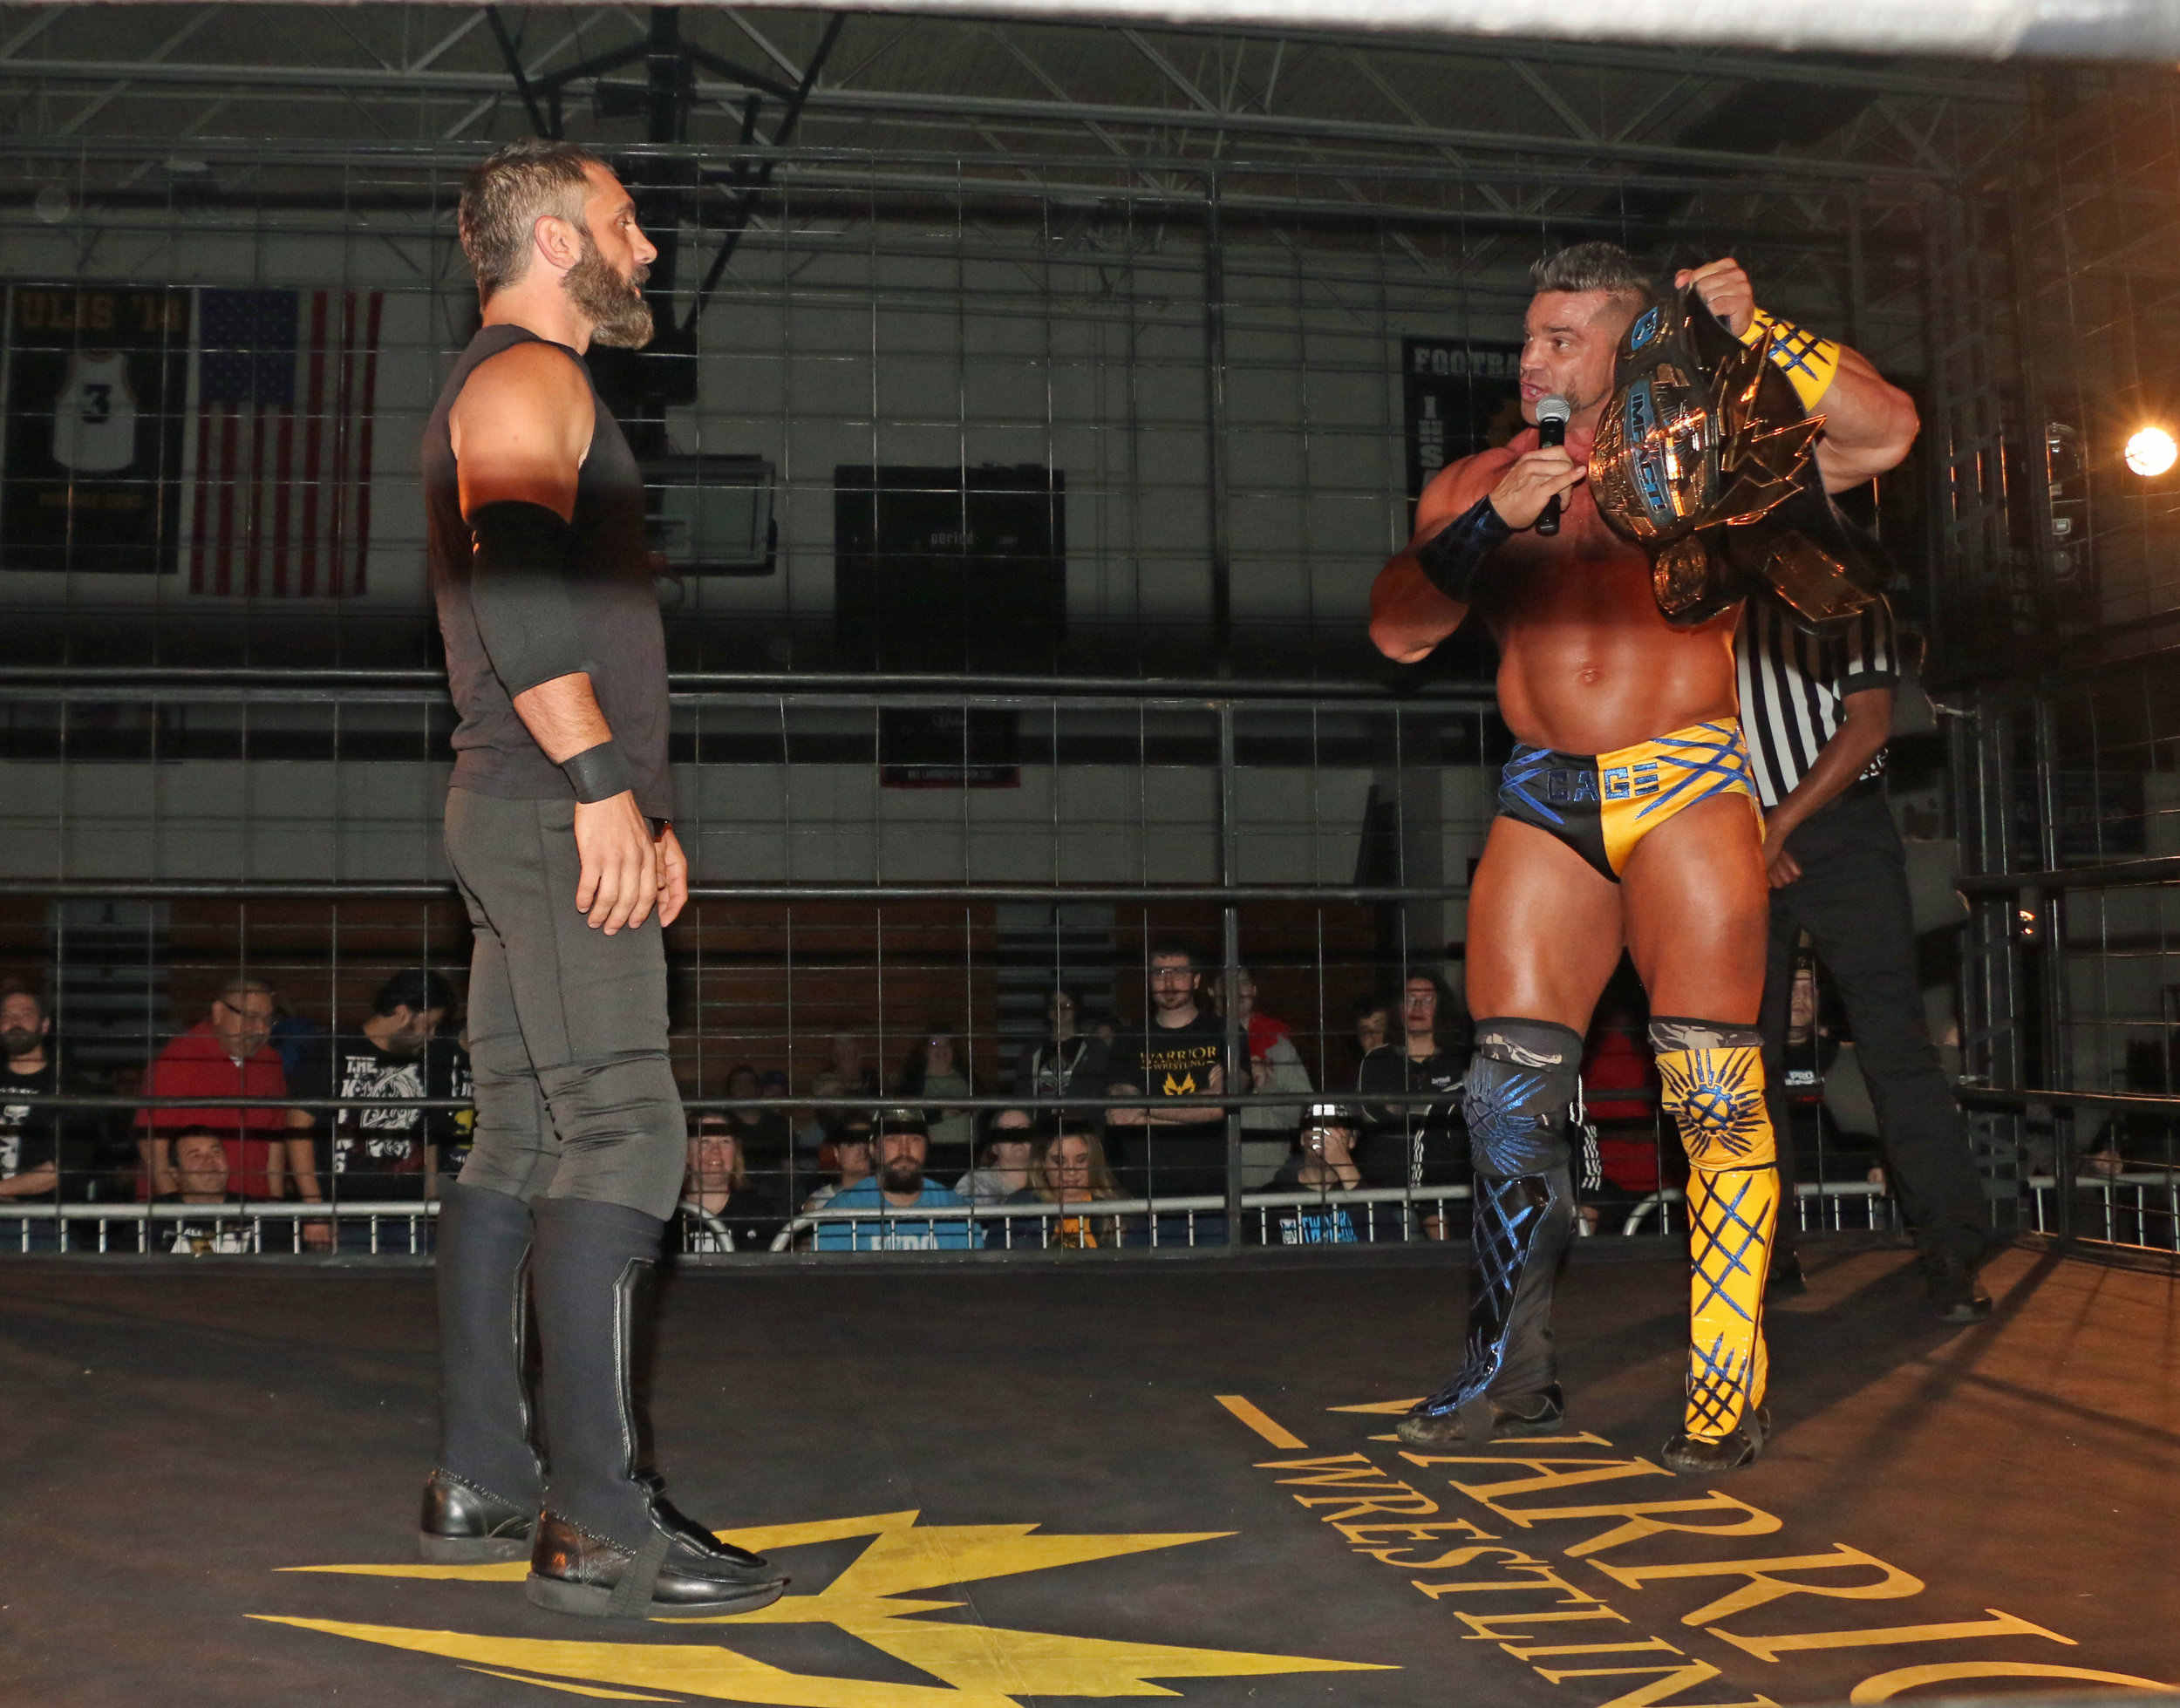 Brian Cage, right, was willing to play along with Austin Aries and defend his title against him and Wardlow in the cage.